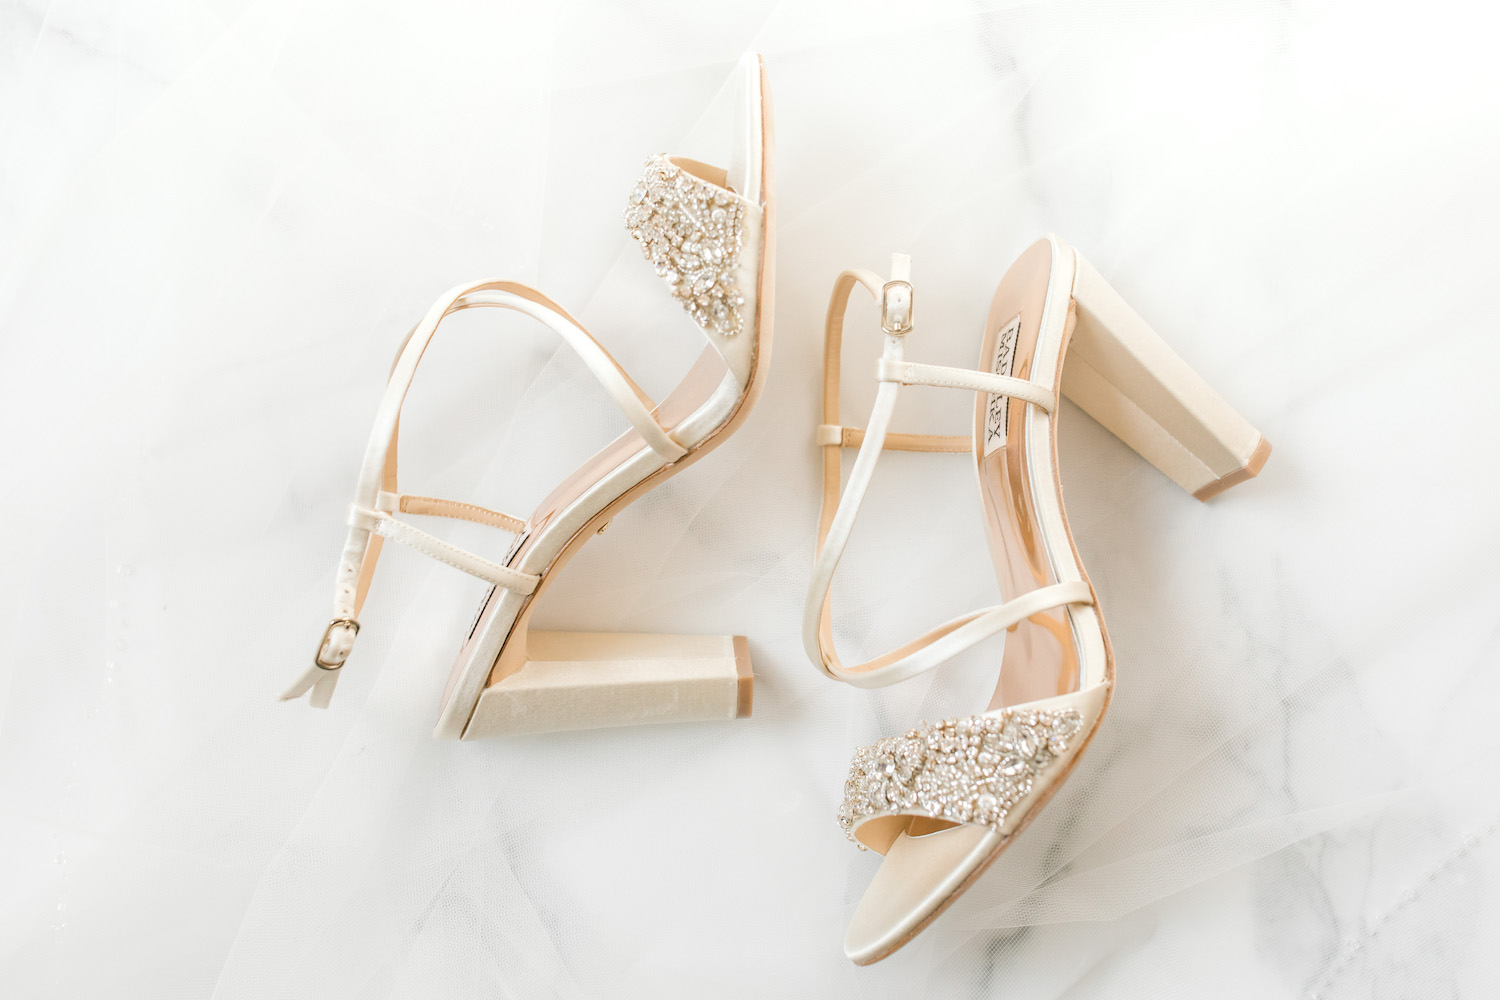 Brides shoes for her City Flats Hotel wedding